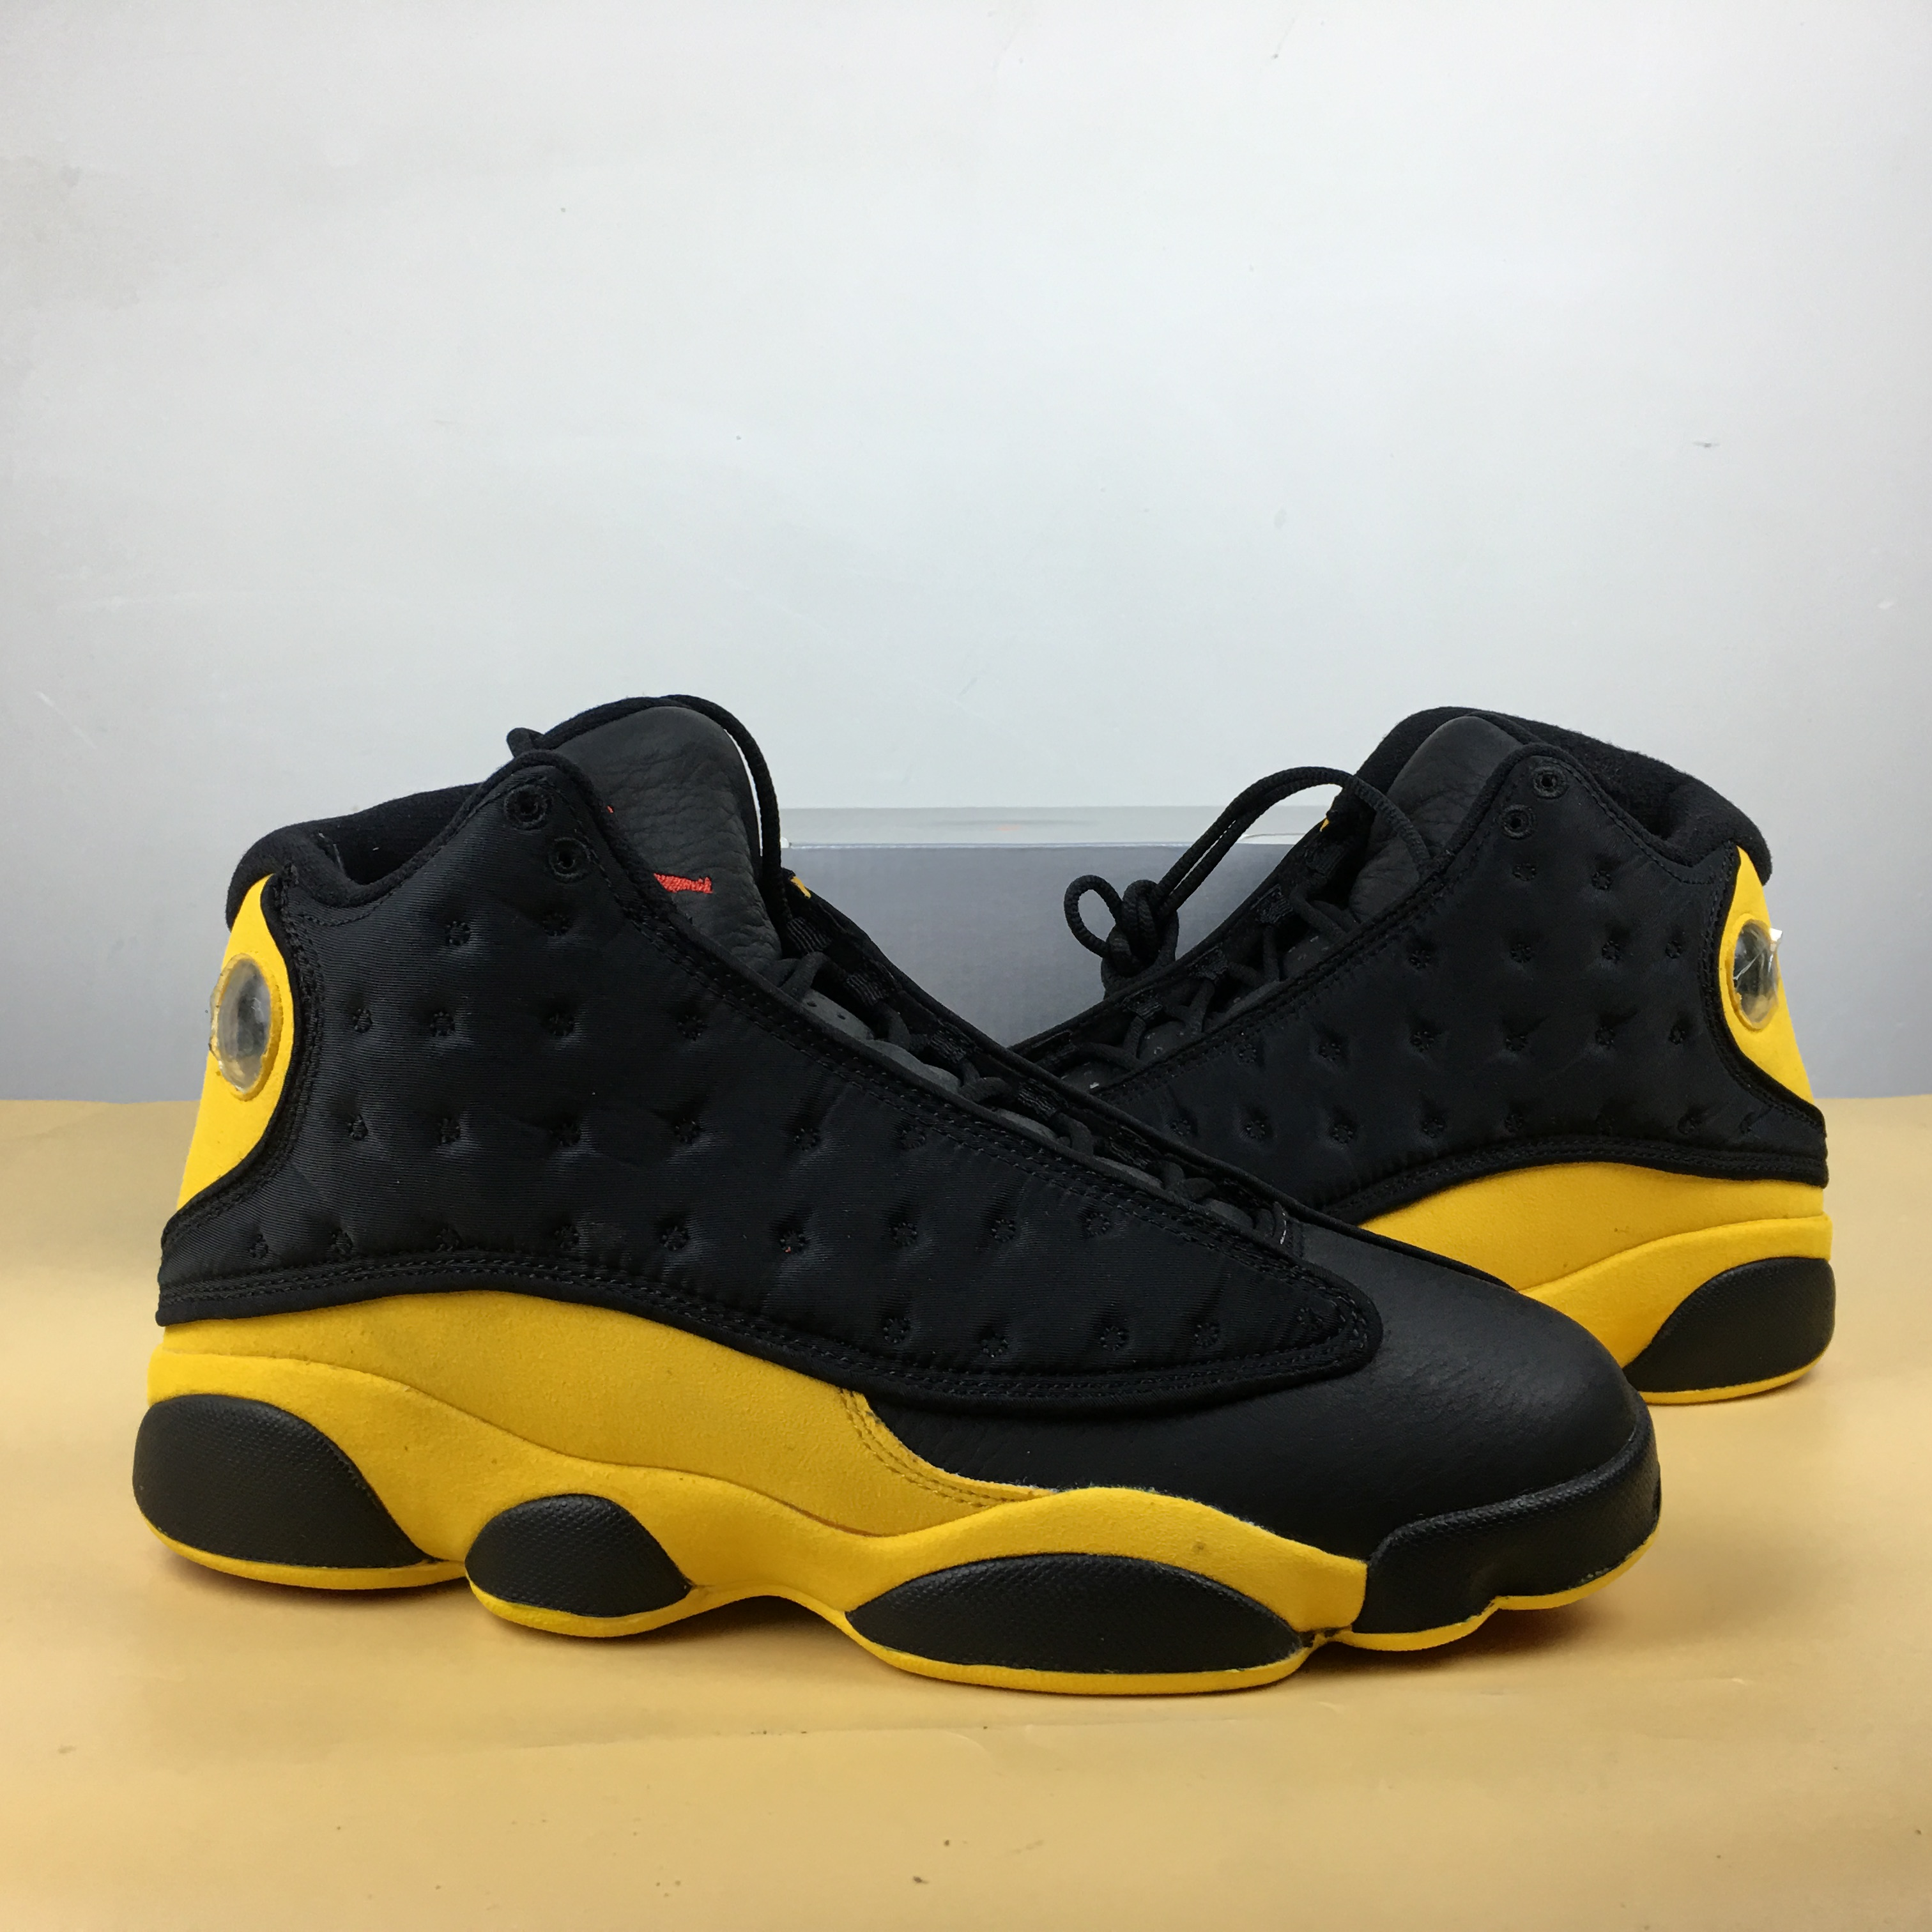 New Air Jordan 13 Melo Class of 2003 Shoes